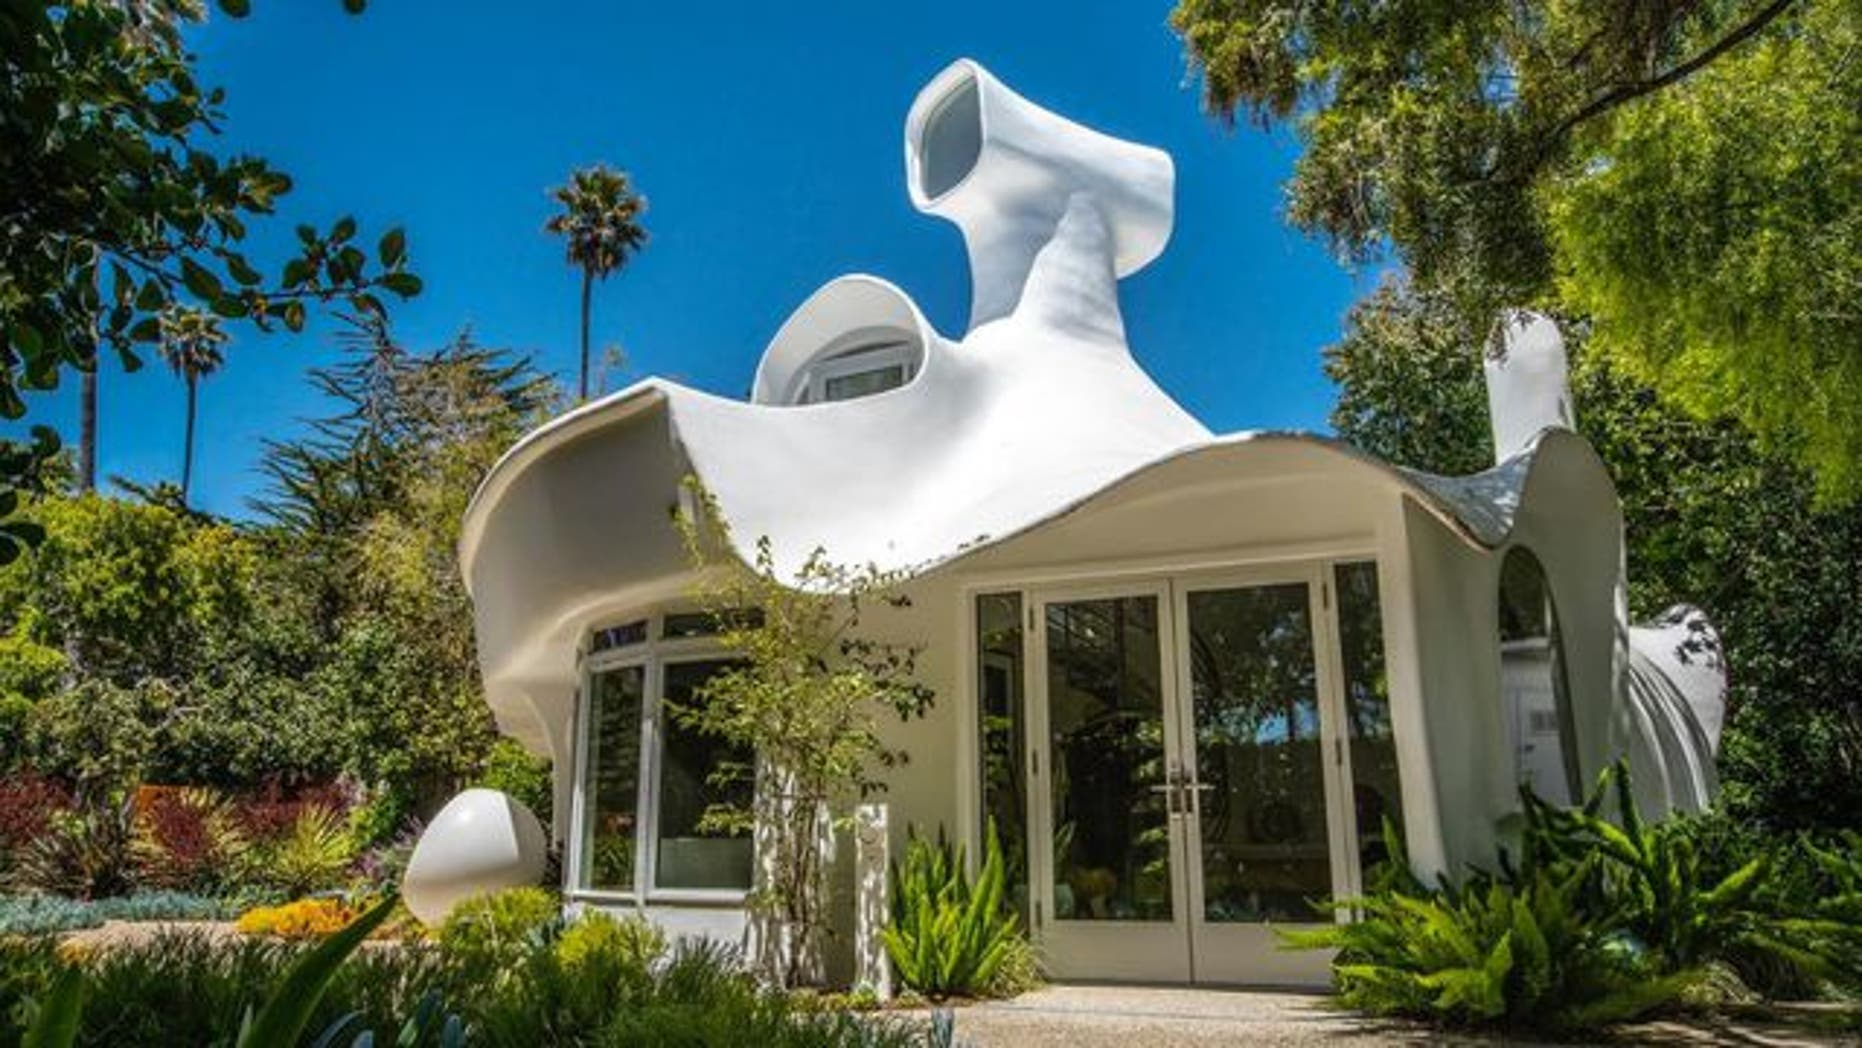 This sculpture house in California sits near the beach and is selling for $1.4 million.